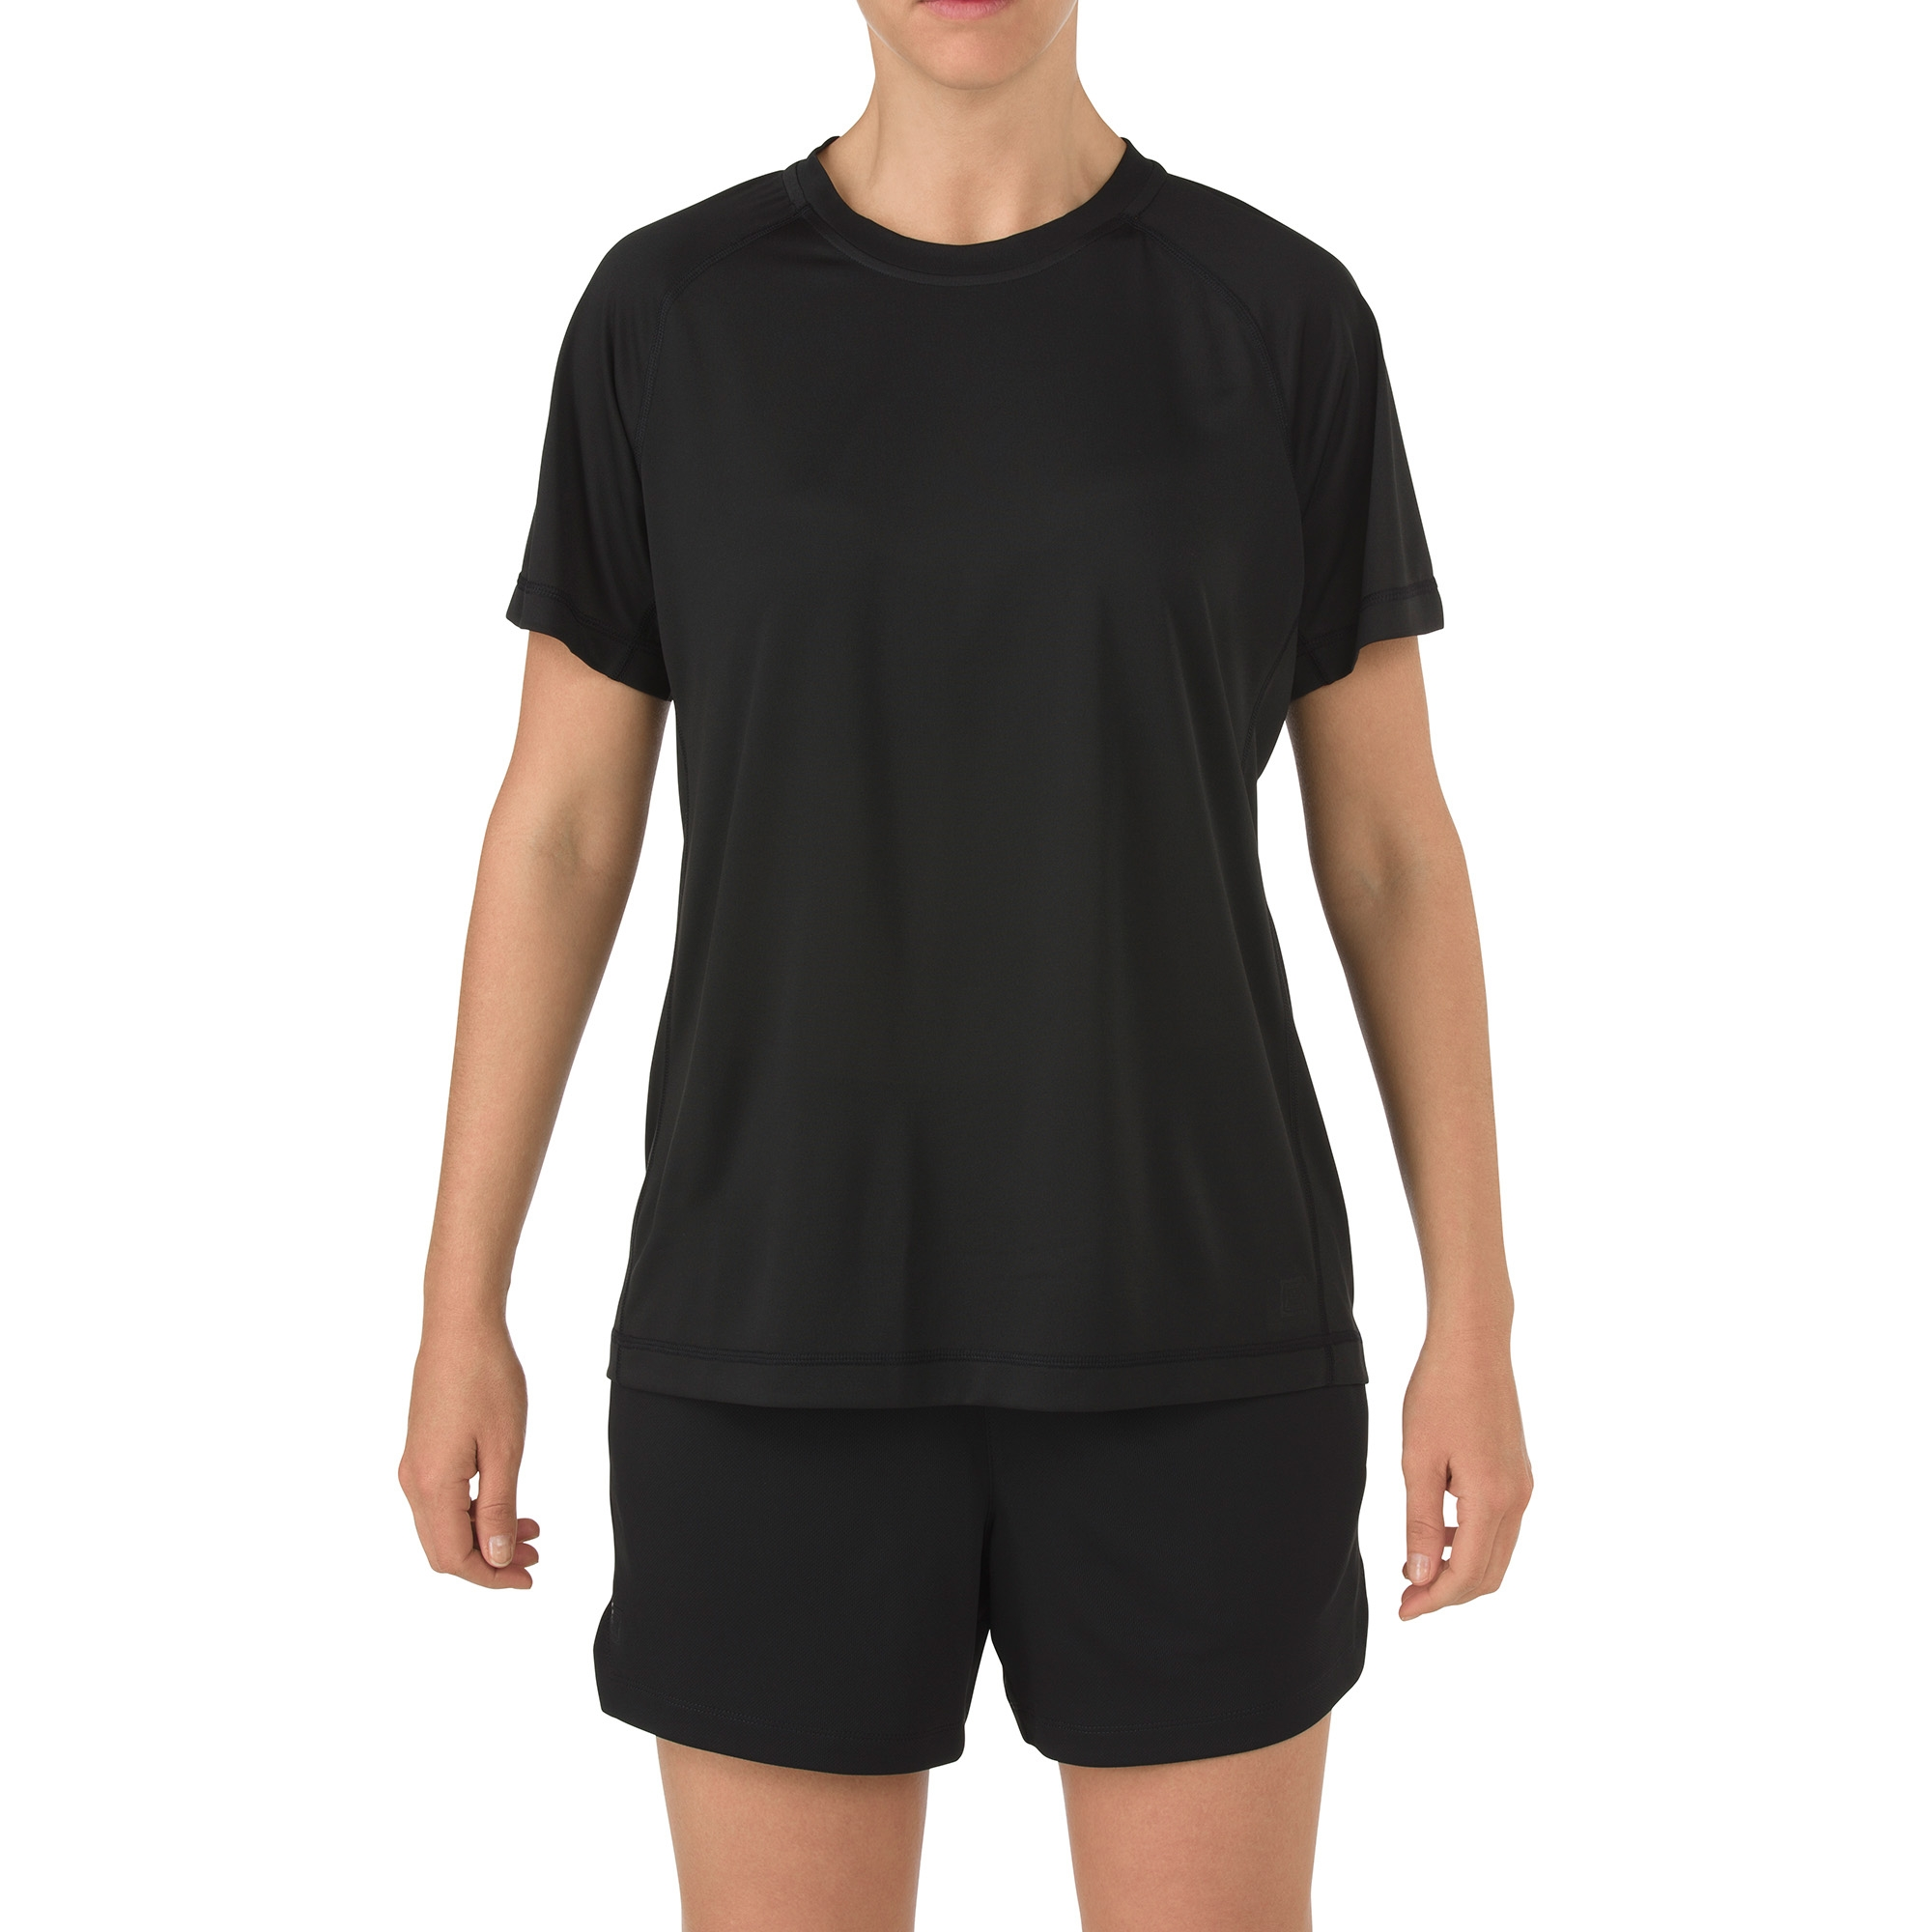 5.11 Tactical Women's Women's Utility PT Shirt (Black)